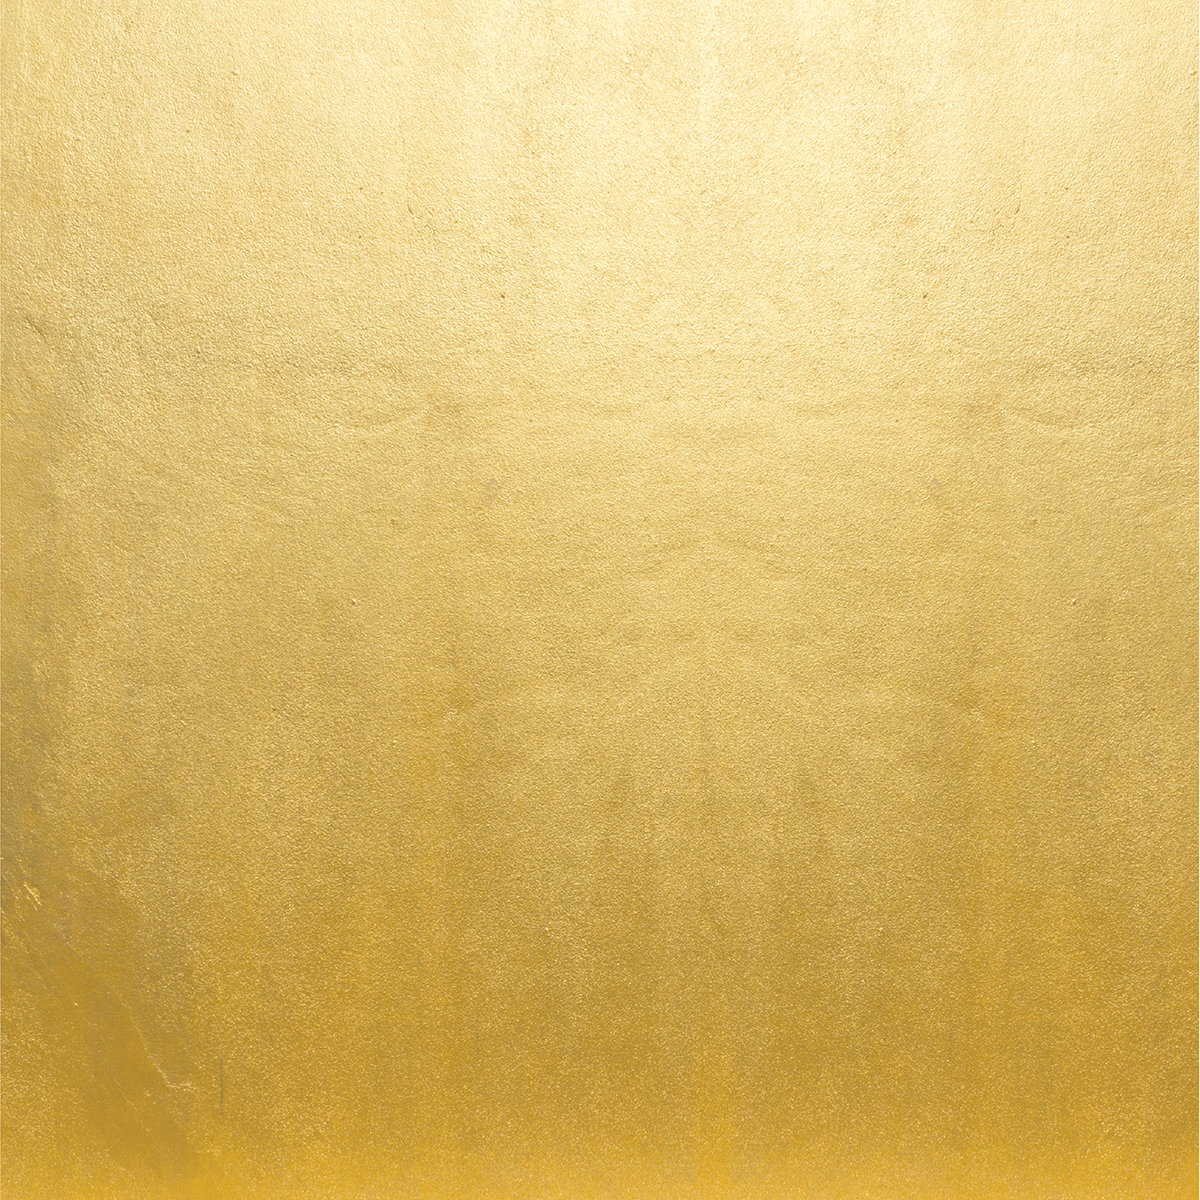 Gold foil leaf wallpaper